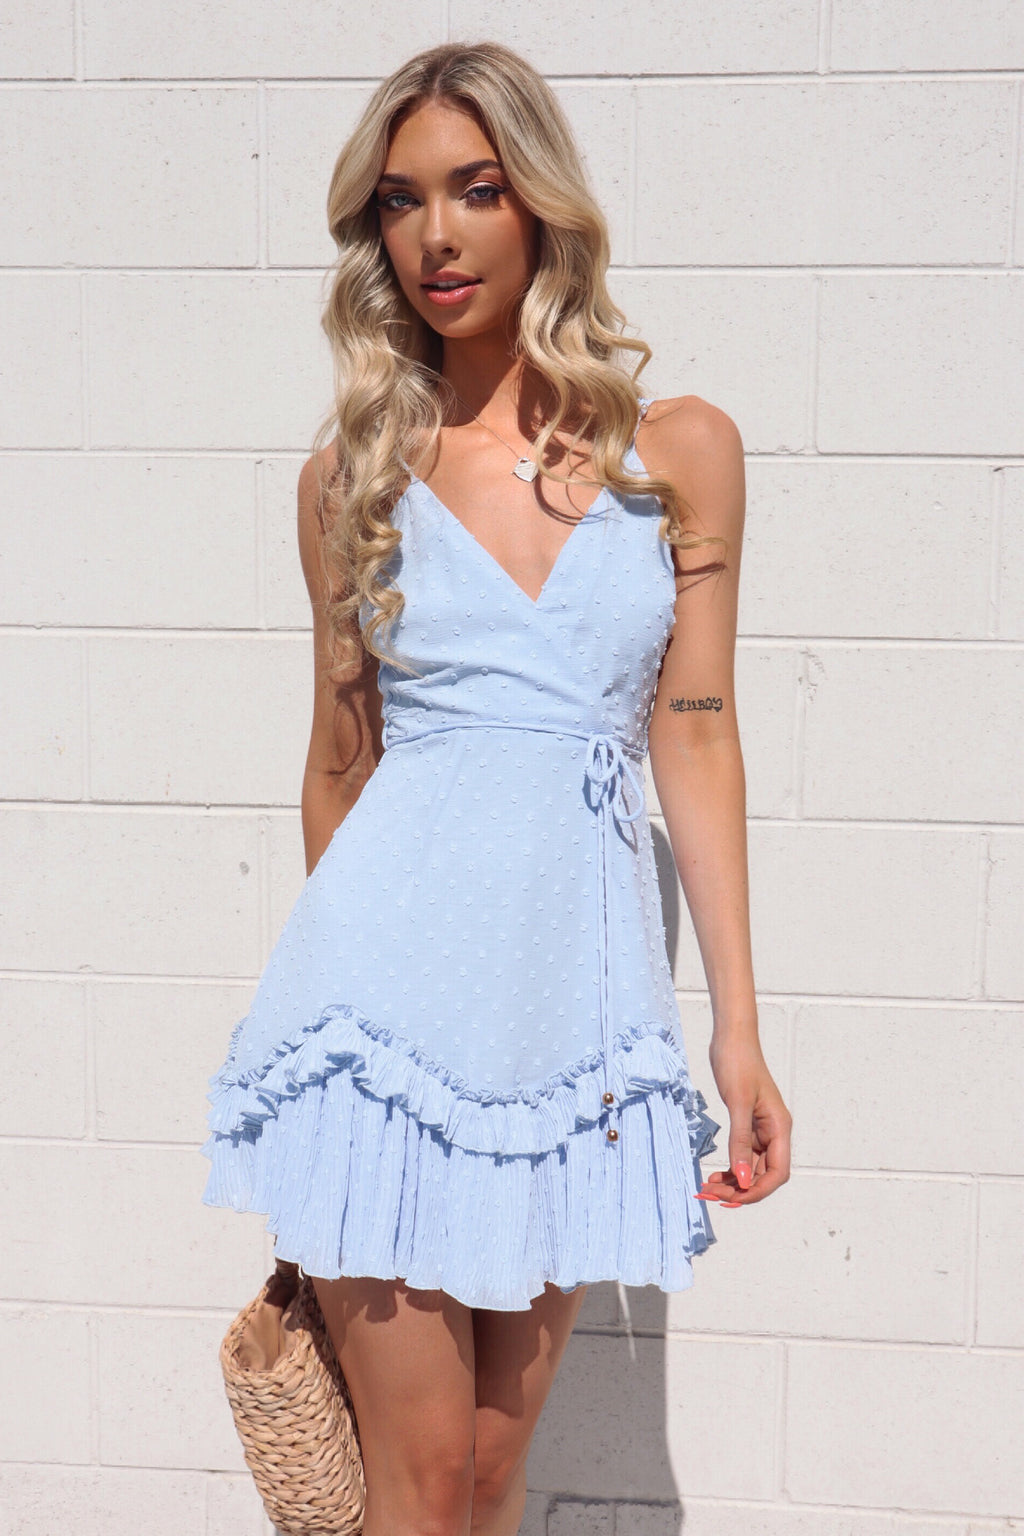 Mia Spotty Dress - Baby Blue - Runway Goddess